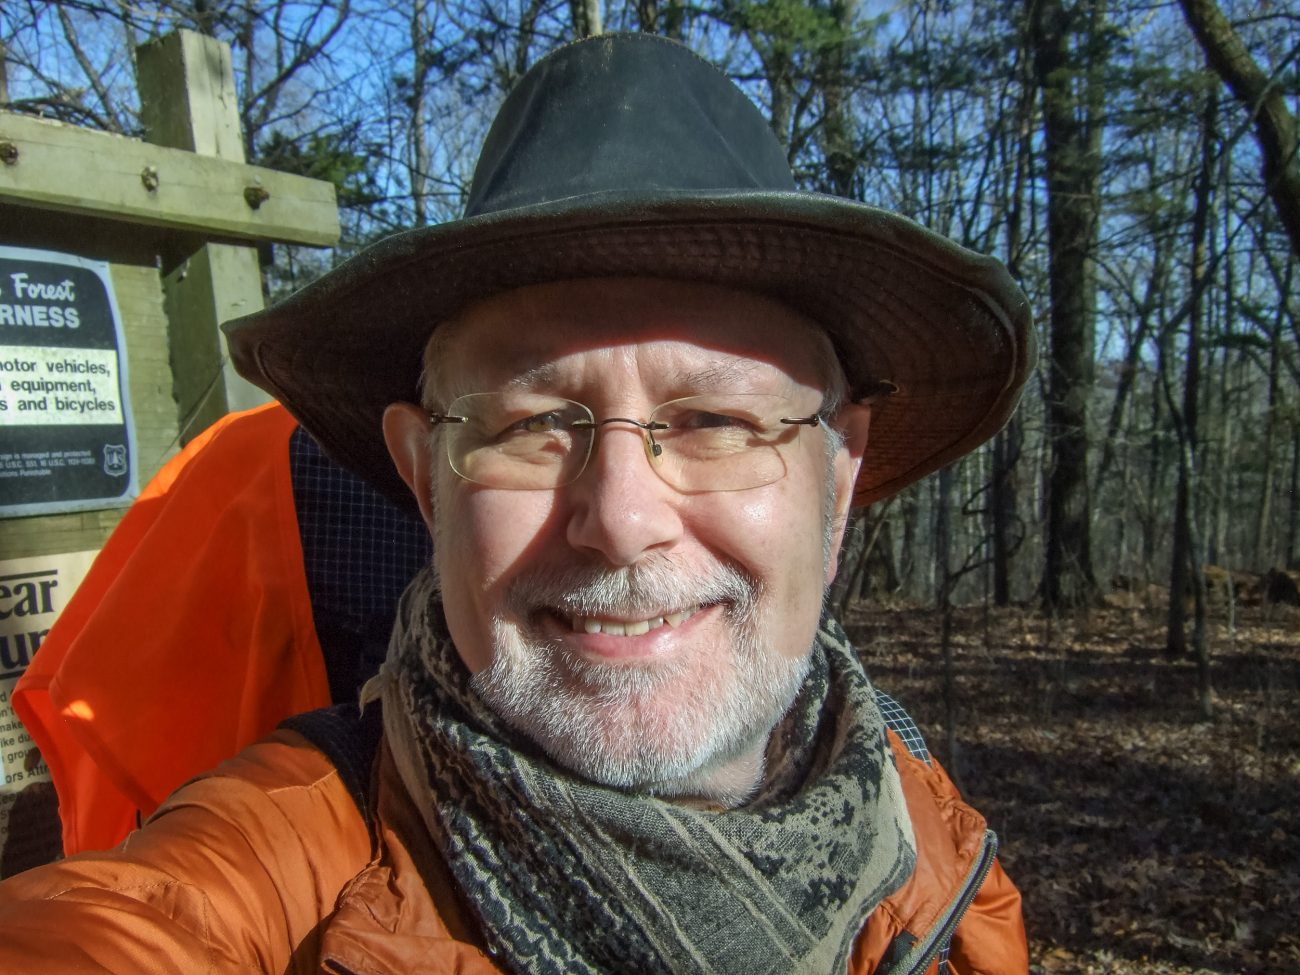 Color photograph of Gary Allman checking in at the Tower Trailhead, on his final backpacking trip in December 2020., Hercules Glades Wilderness, Missouri, USA.